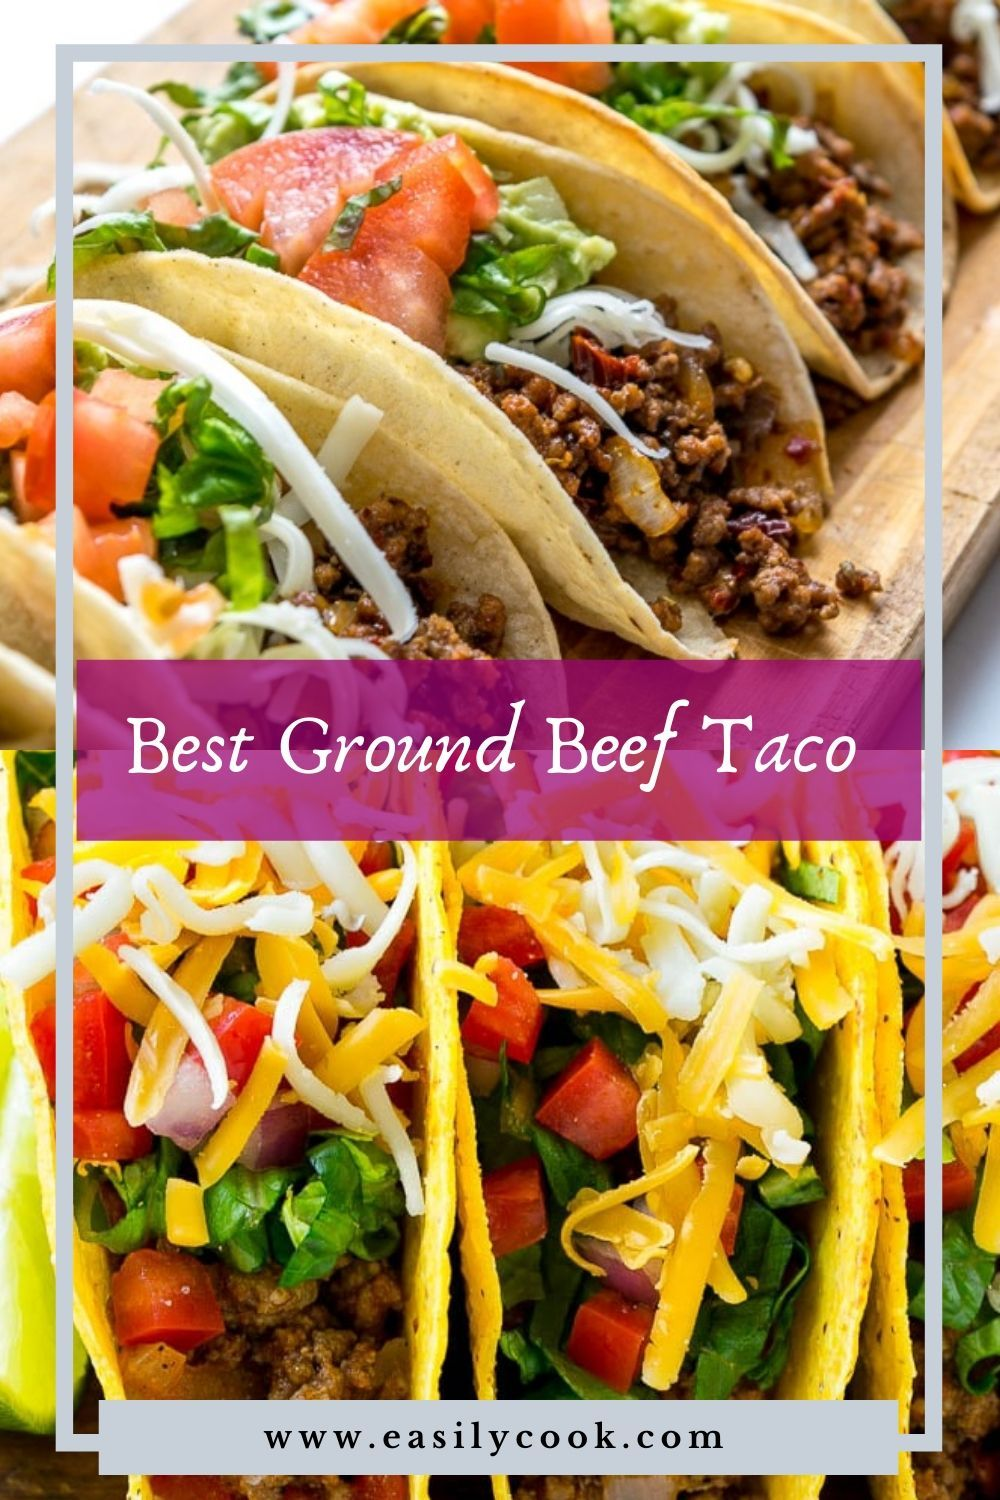 Best Ground Beef Taco Recipe Easilycook Recipe In 2020 Ground Beef Tacos Taco Recipes Ground Beef Beef Tacos Recipes